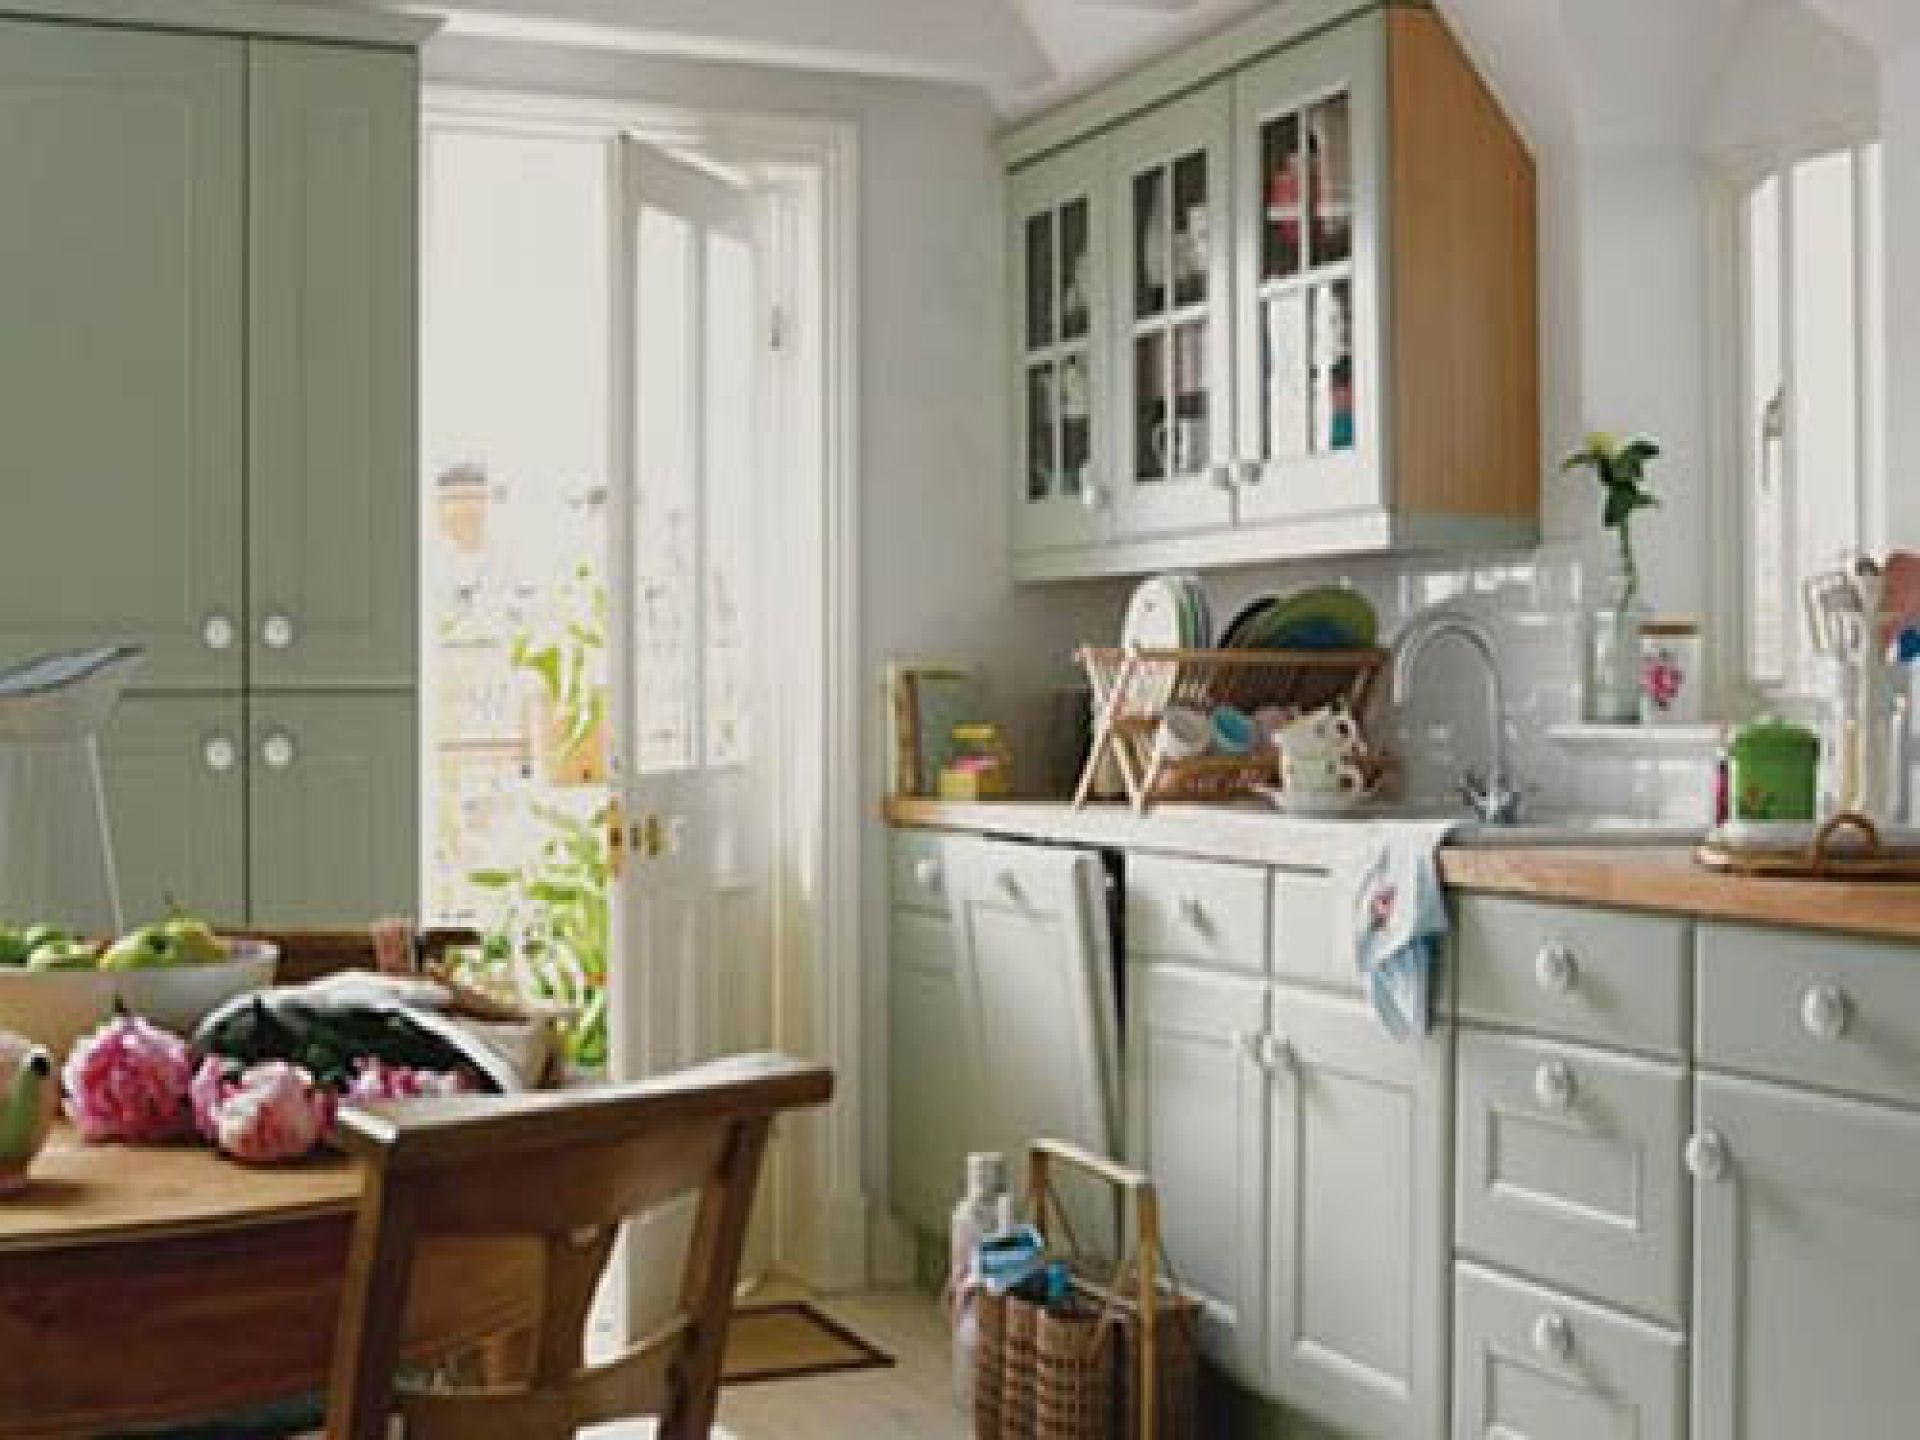 Best Country Kitchen Designs country kitchen cabinets: pictures, ideas & tips from hgtv | hgtv